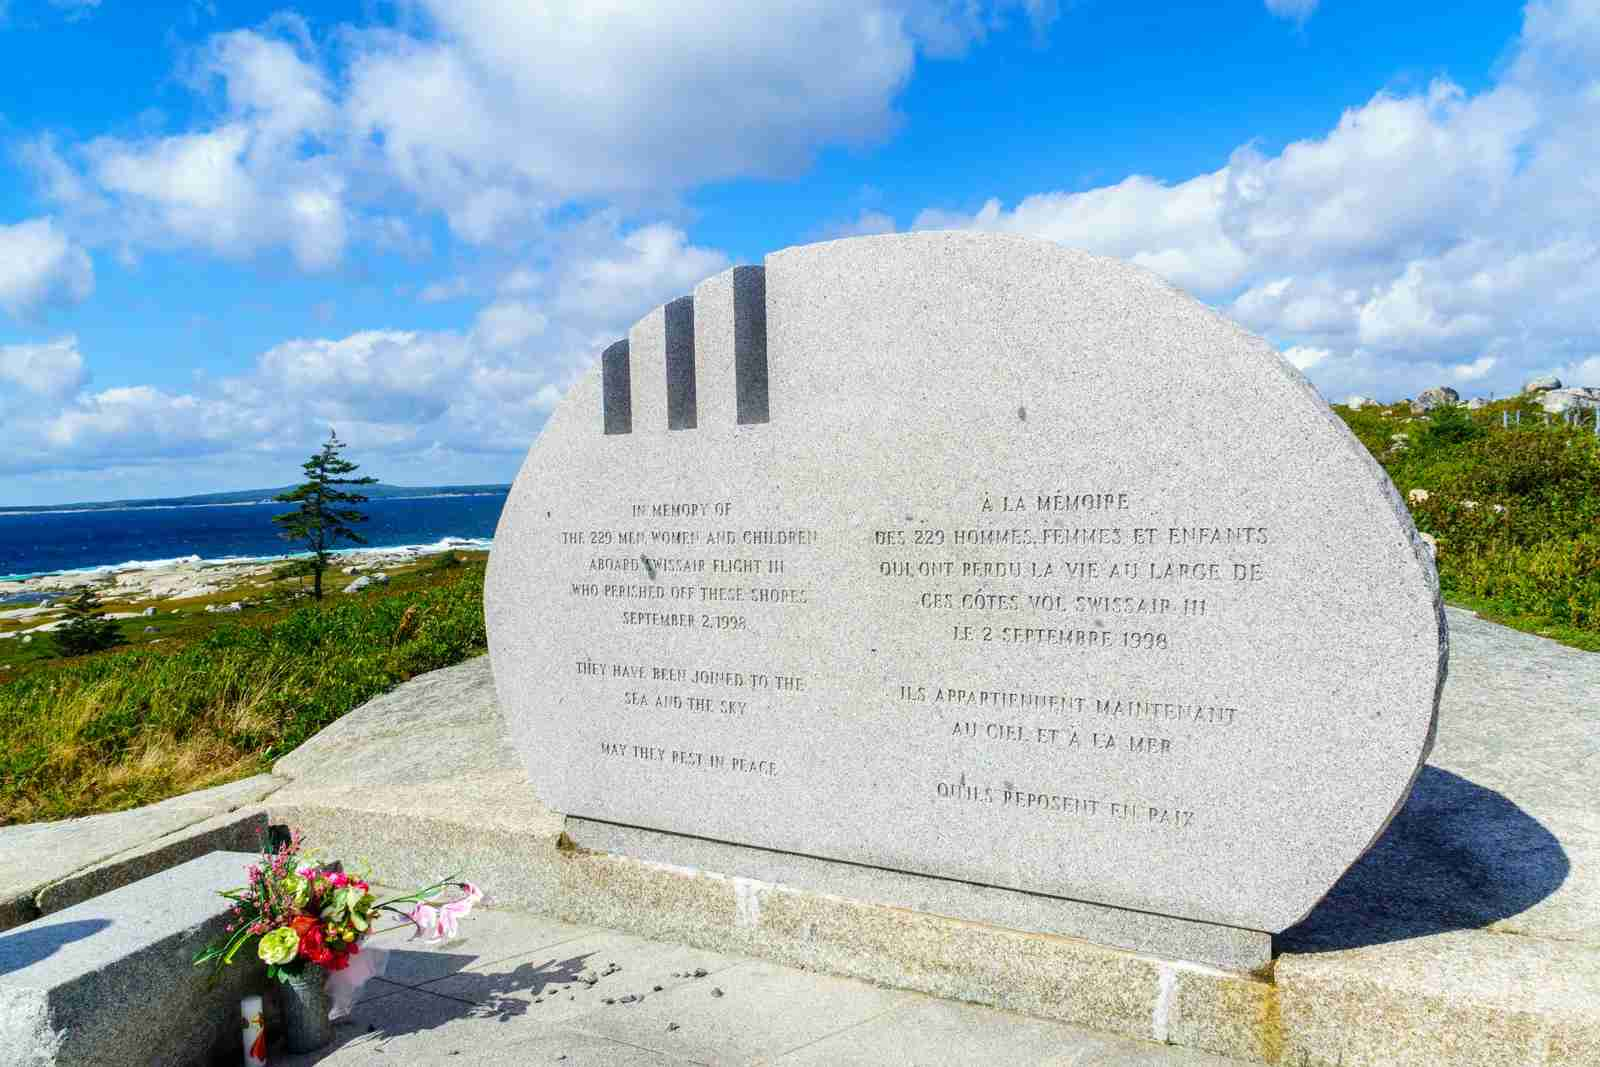 Swiss Air 111 Memorial, in Nova Scotia. (Photo by RnDmS/Getty Images)